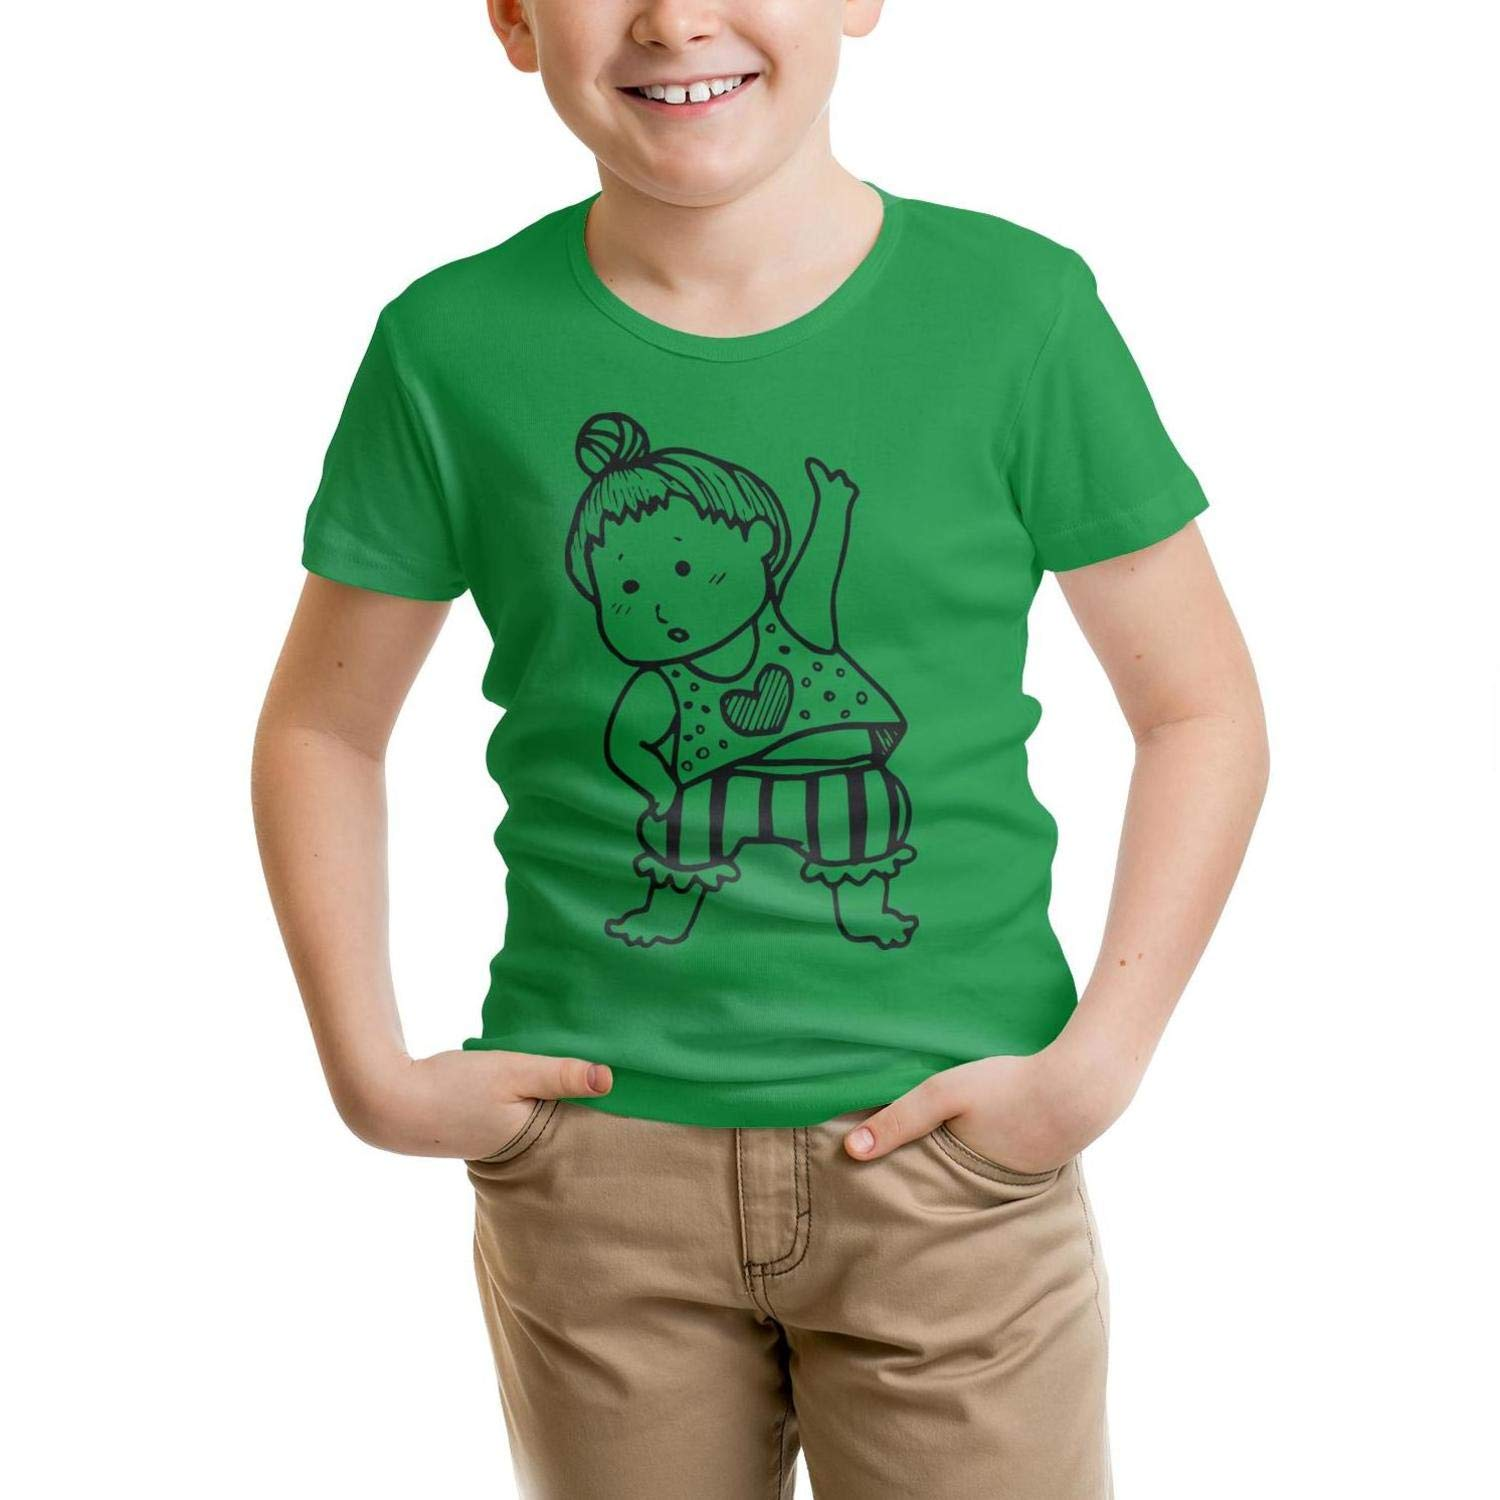 usYnCV Cotton Do Morning Exercises t-Shirt Slim-Fit for Kids Shirts Pretty Pattern